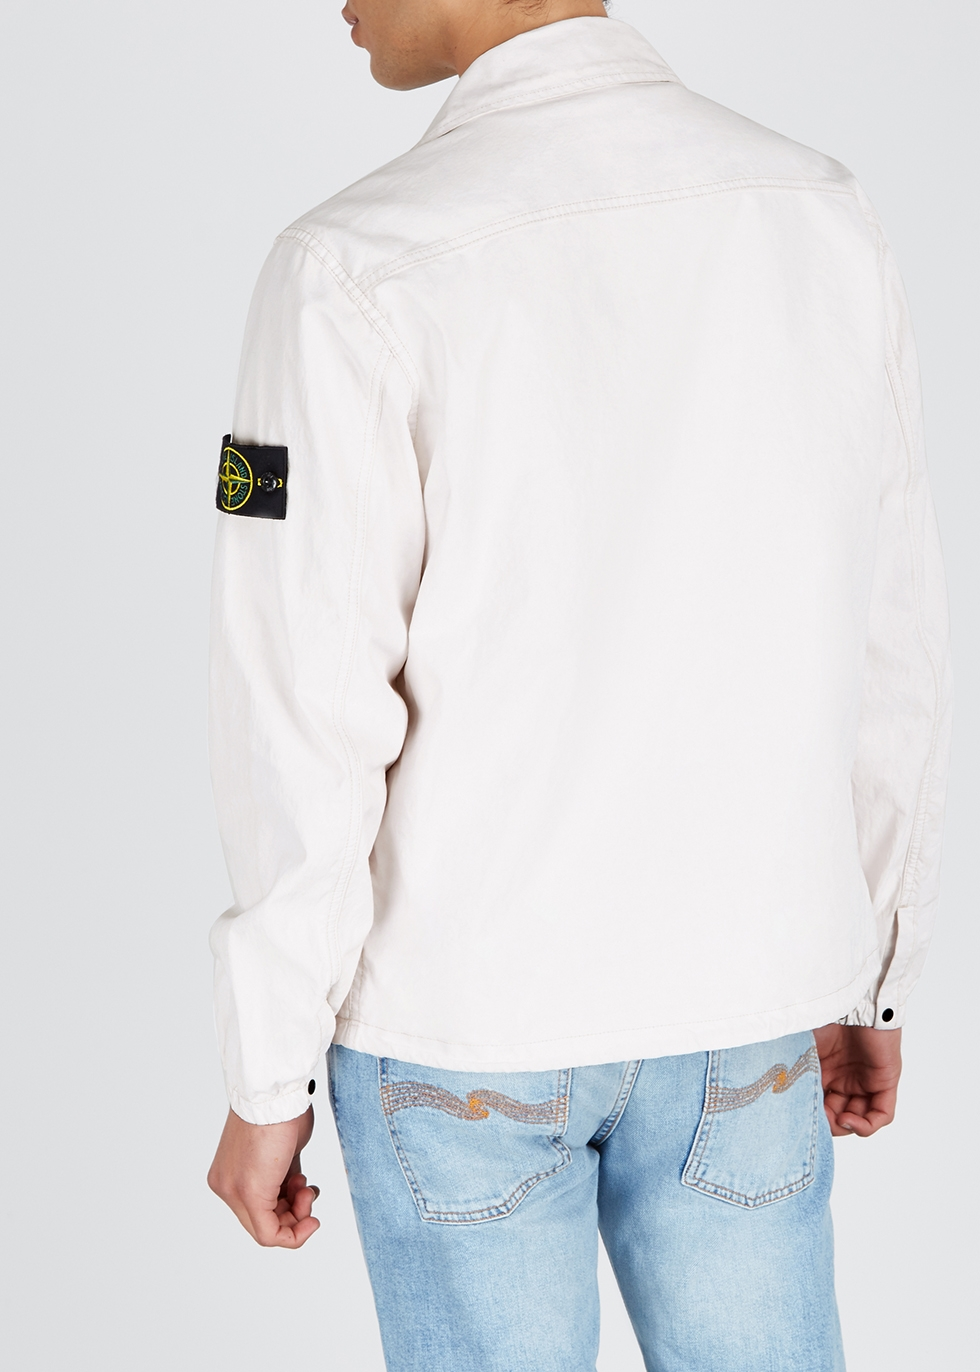 Off-white Tela Placcata cotton jacket - Stone Island